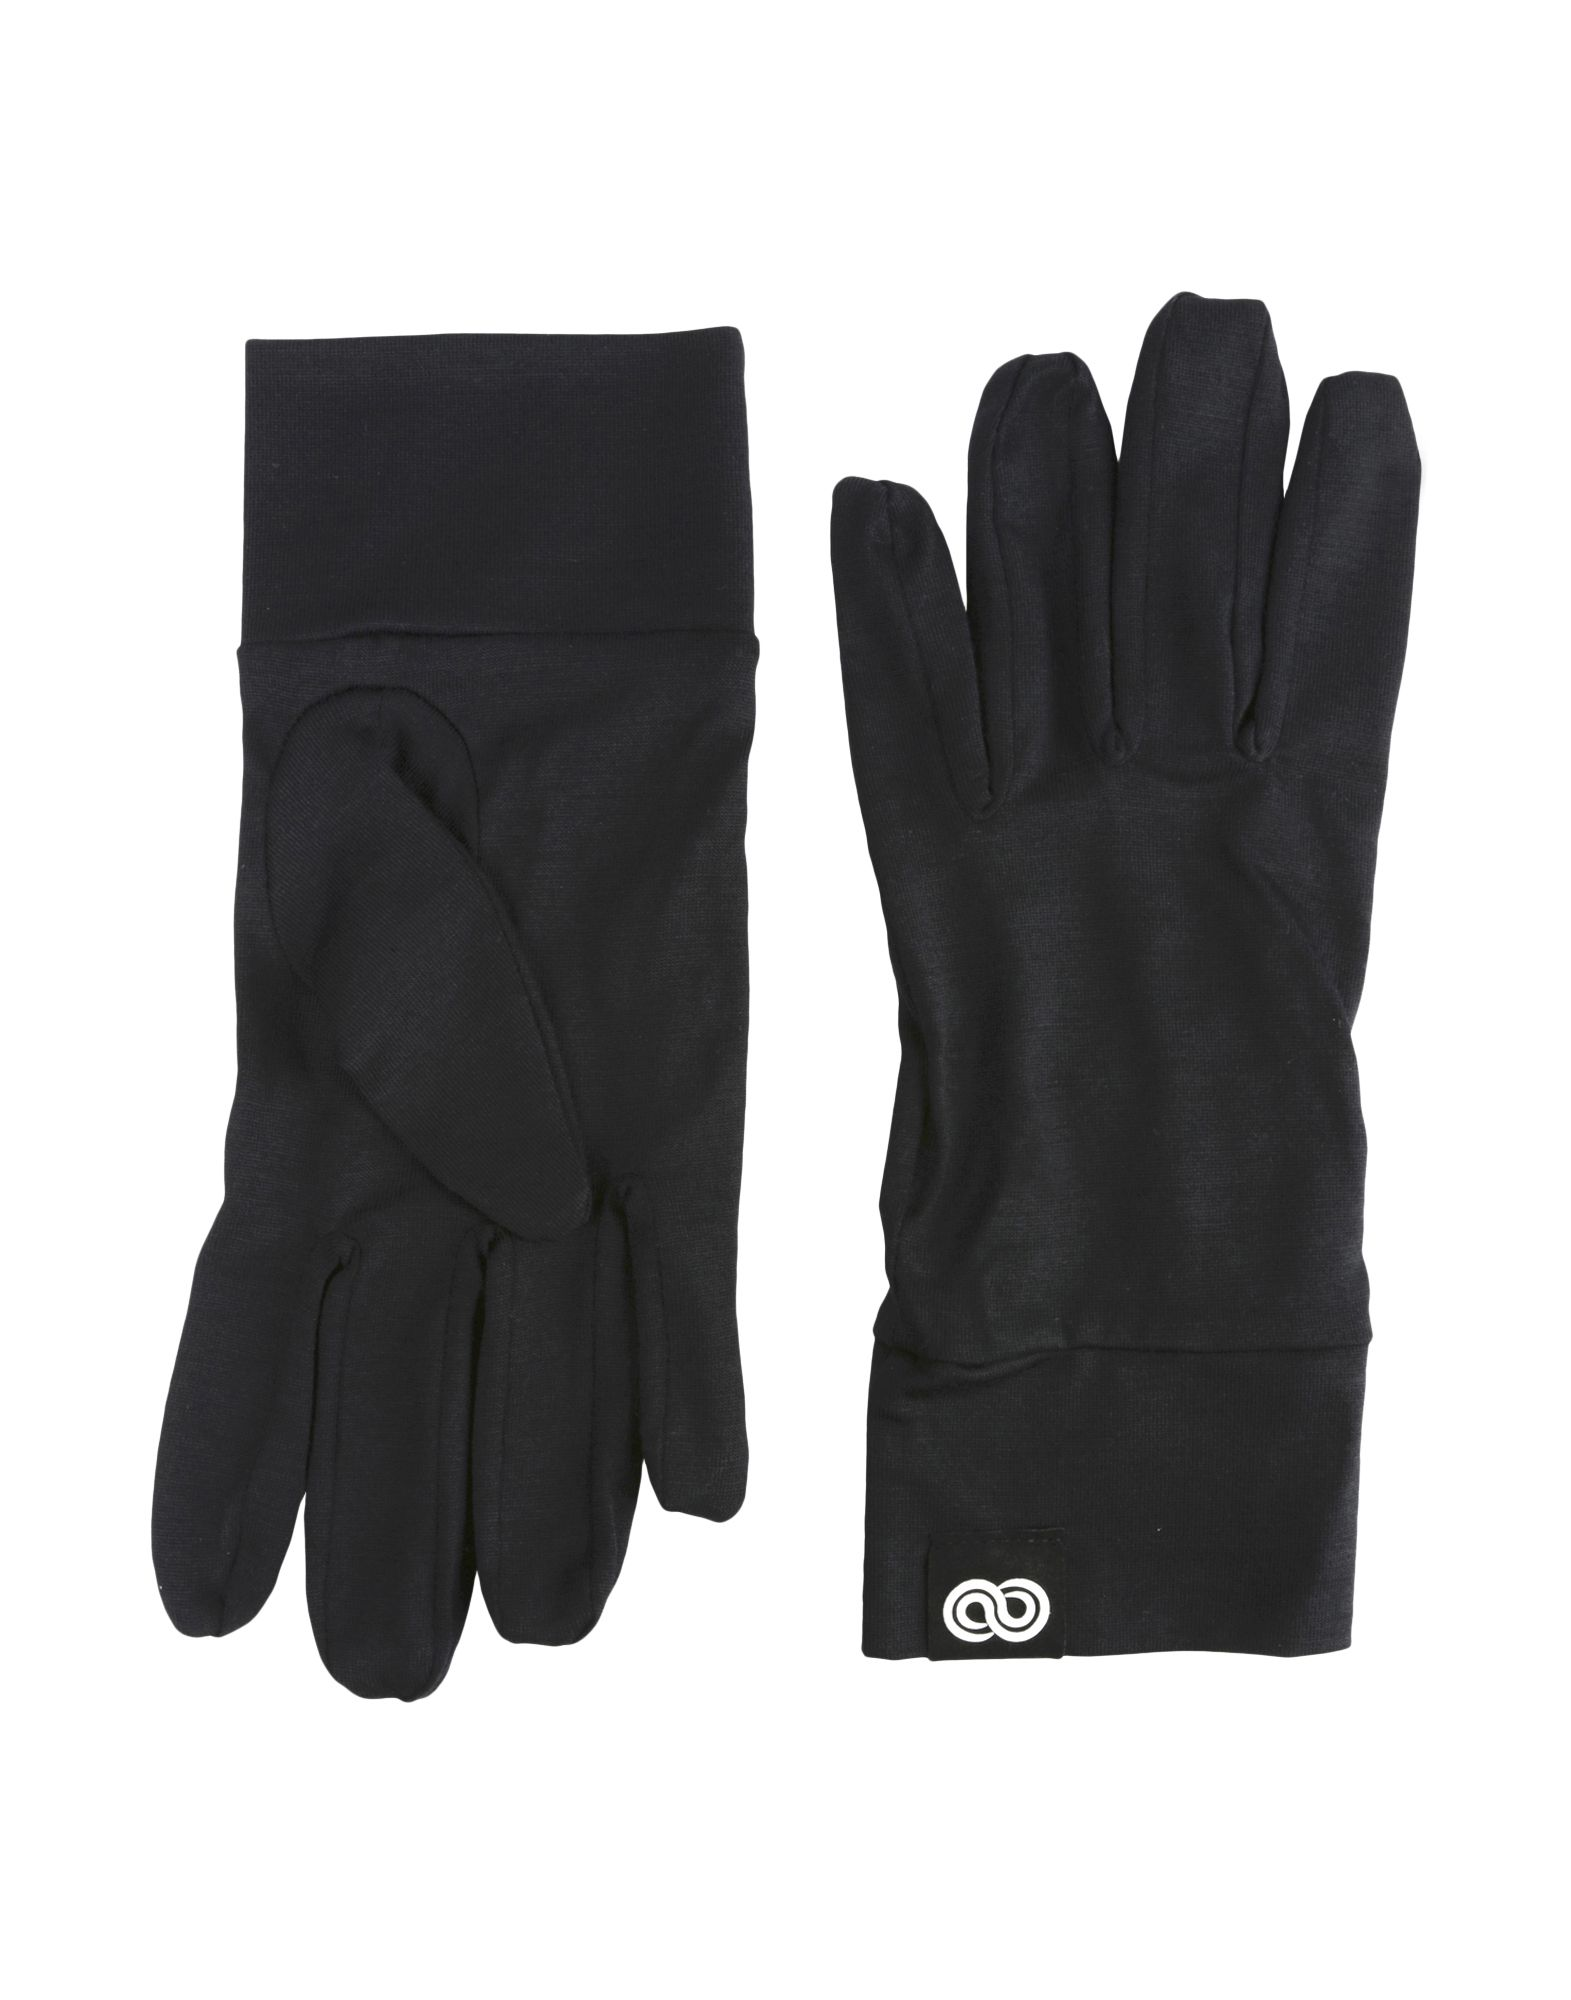 reda rewoolution female reda rewoolution gloves